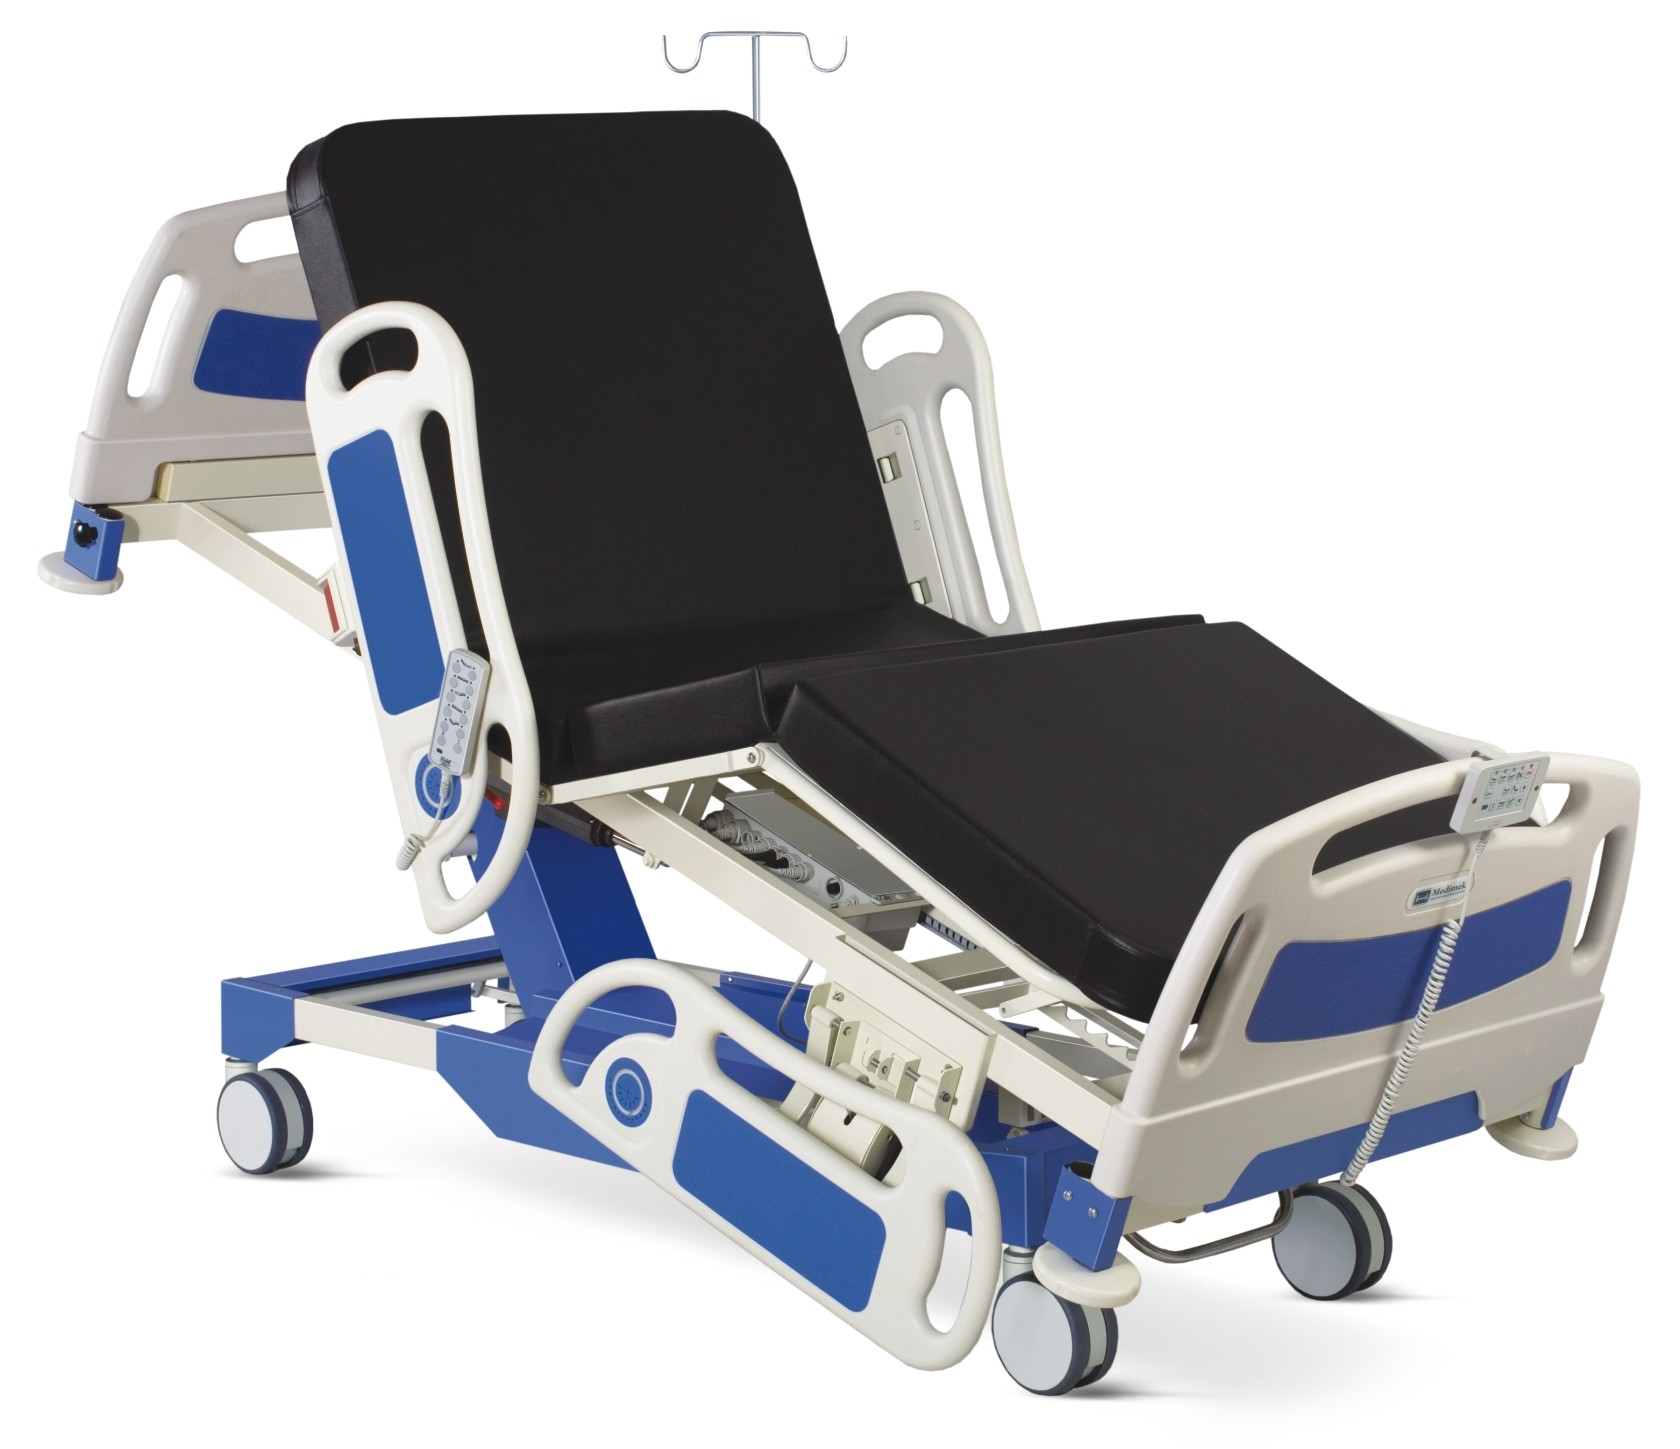 Cardiac chair hospital bed - Cardiac Chair Hospital Bed 51